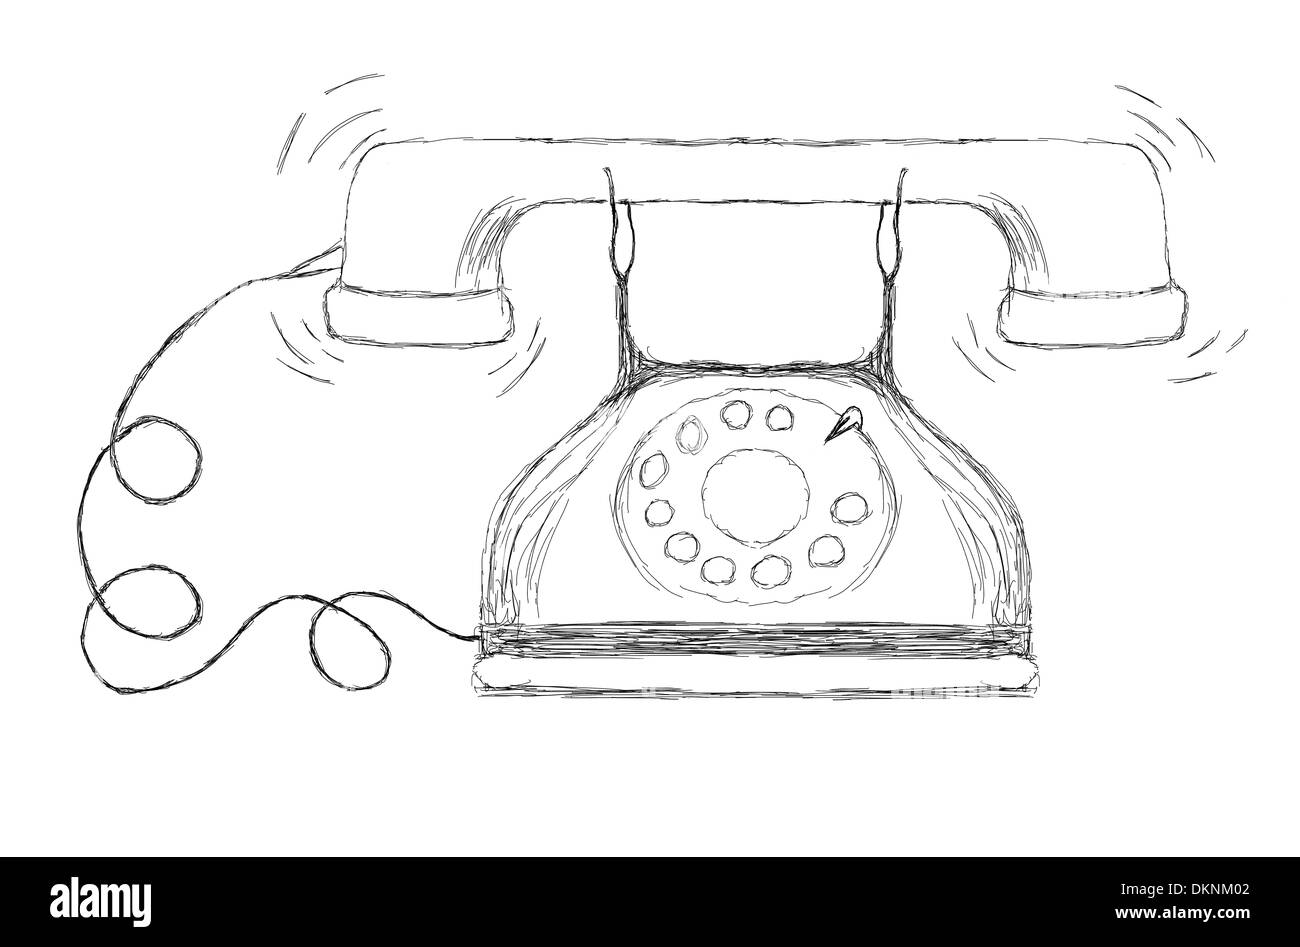 Drawing or illustration of and old style wired telephone